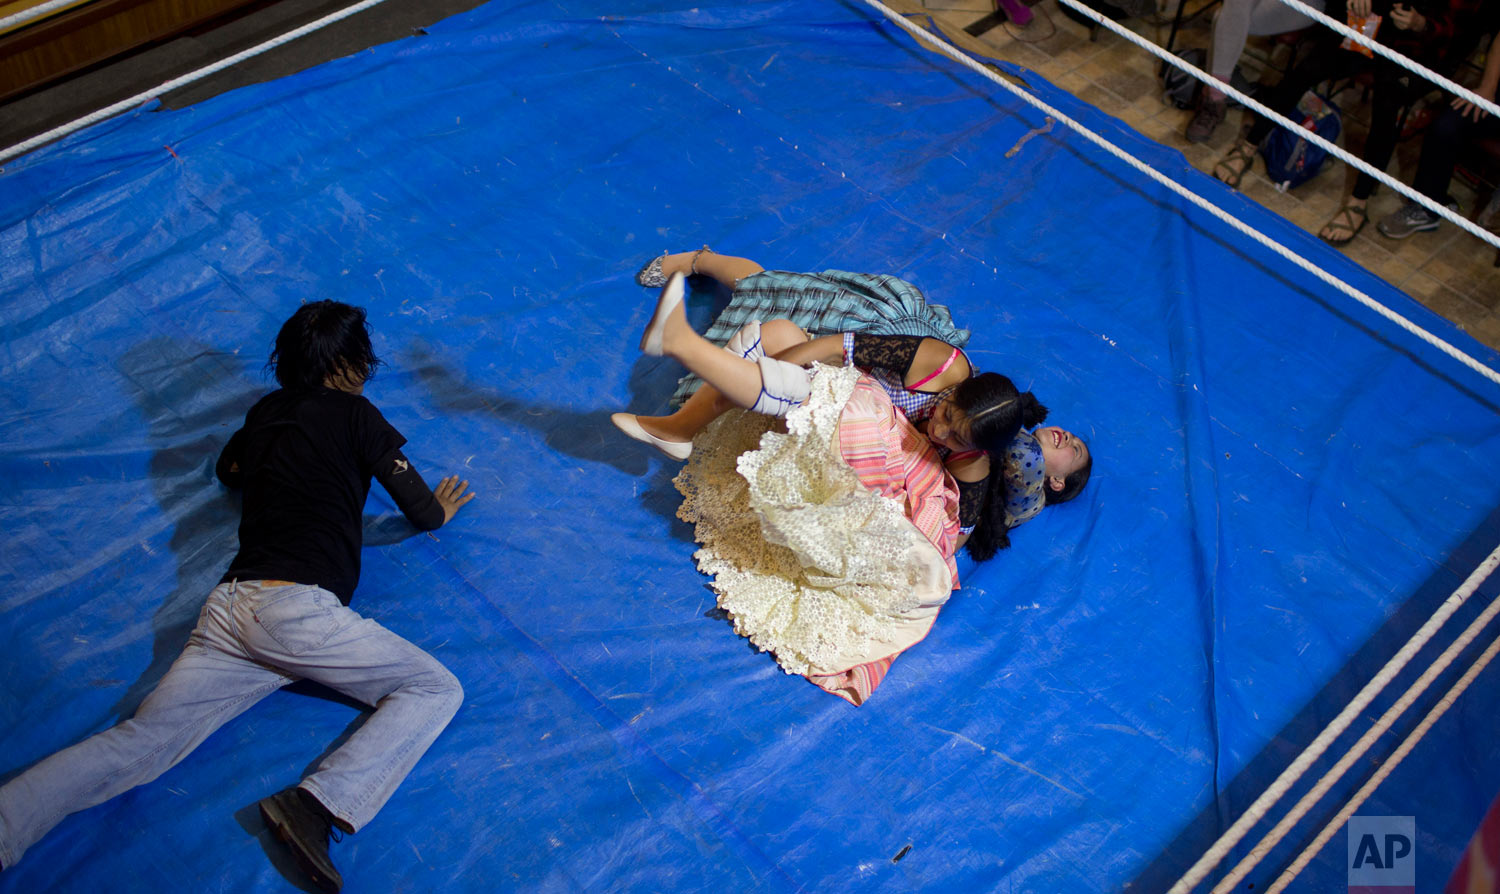 Cholita wrestler Natalia Pepita, 19, is held down by fellow fighter in training, Wara, 22, in the ring in El Alto, Bolivia, Thursday, Feb. 7, 2019. (AP Photo/Juan Karita)